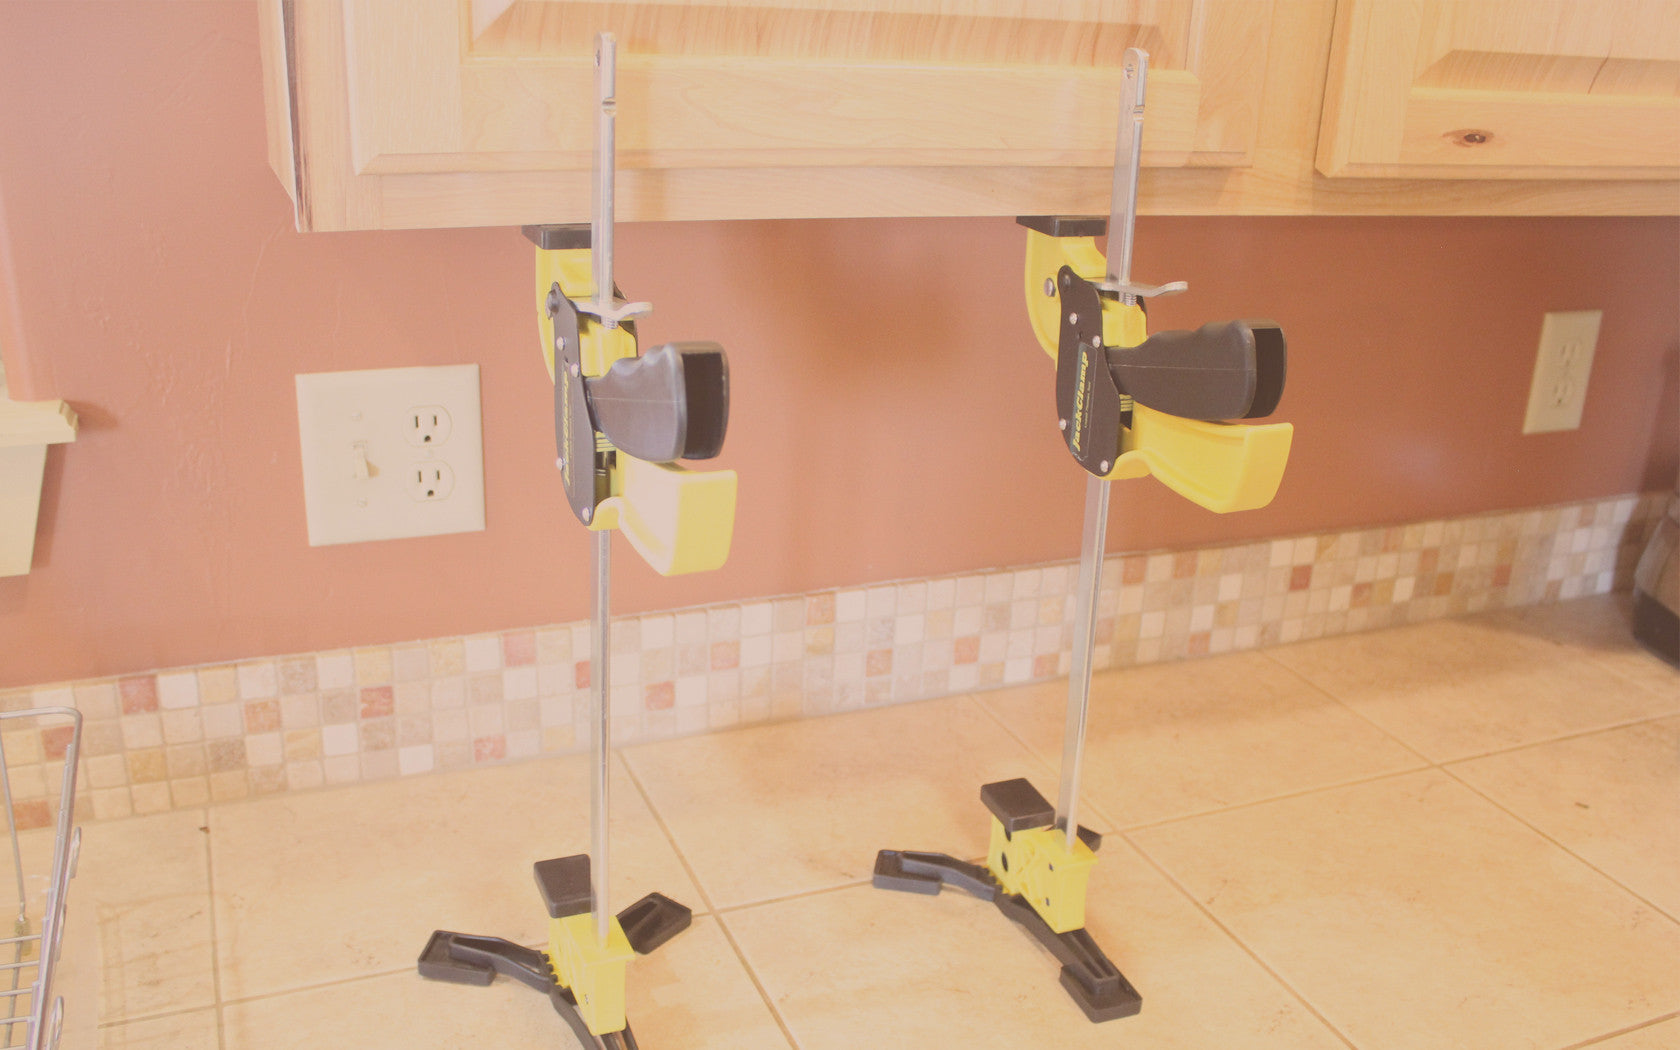 JackClamp Jacking Up Cabinets